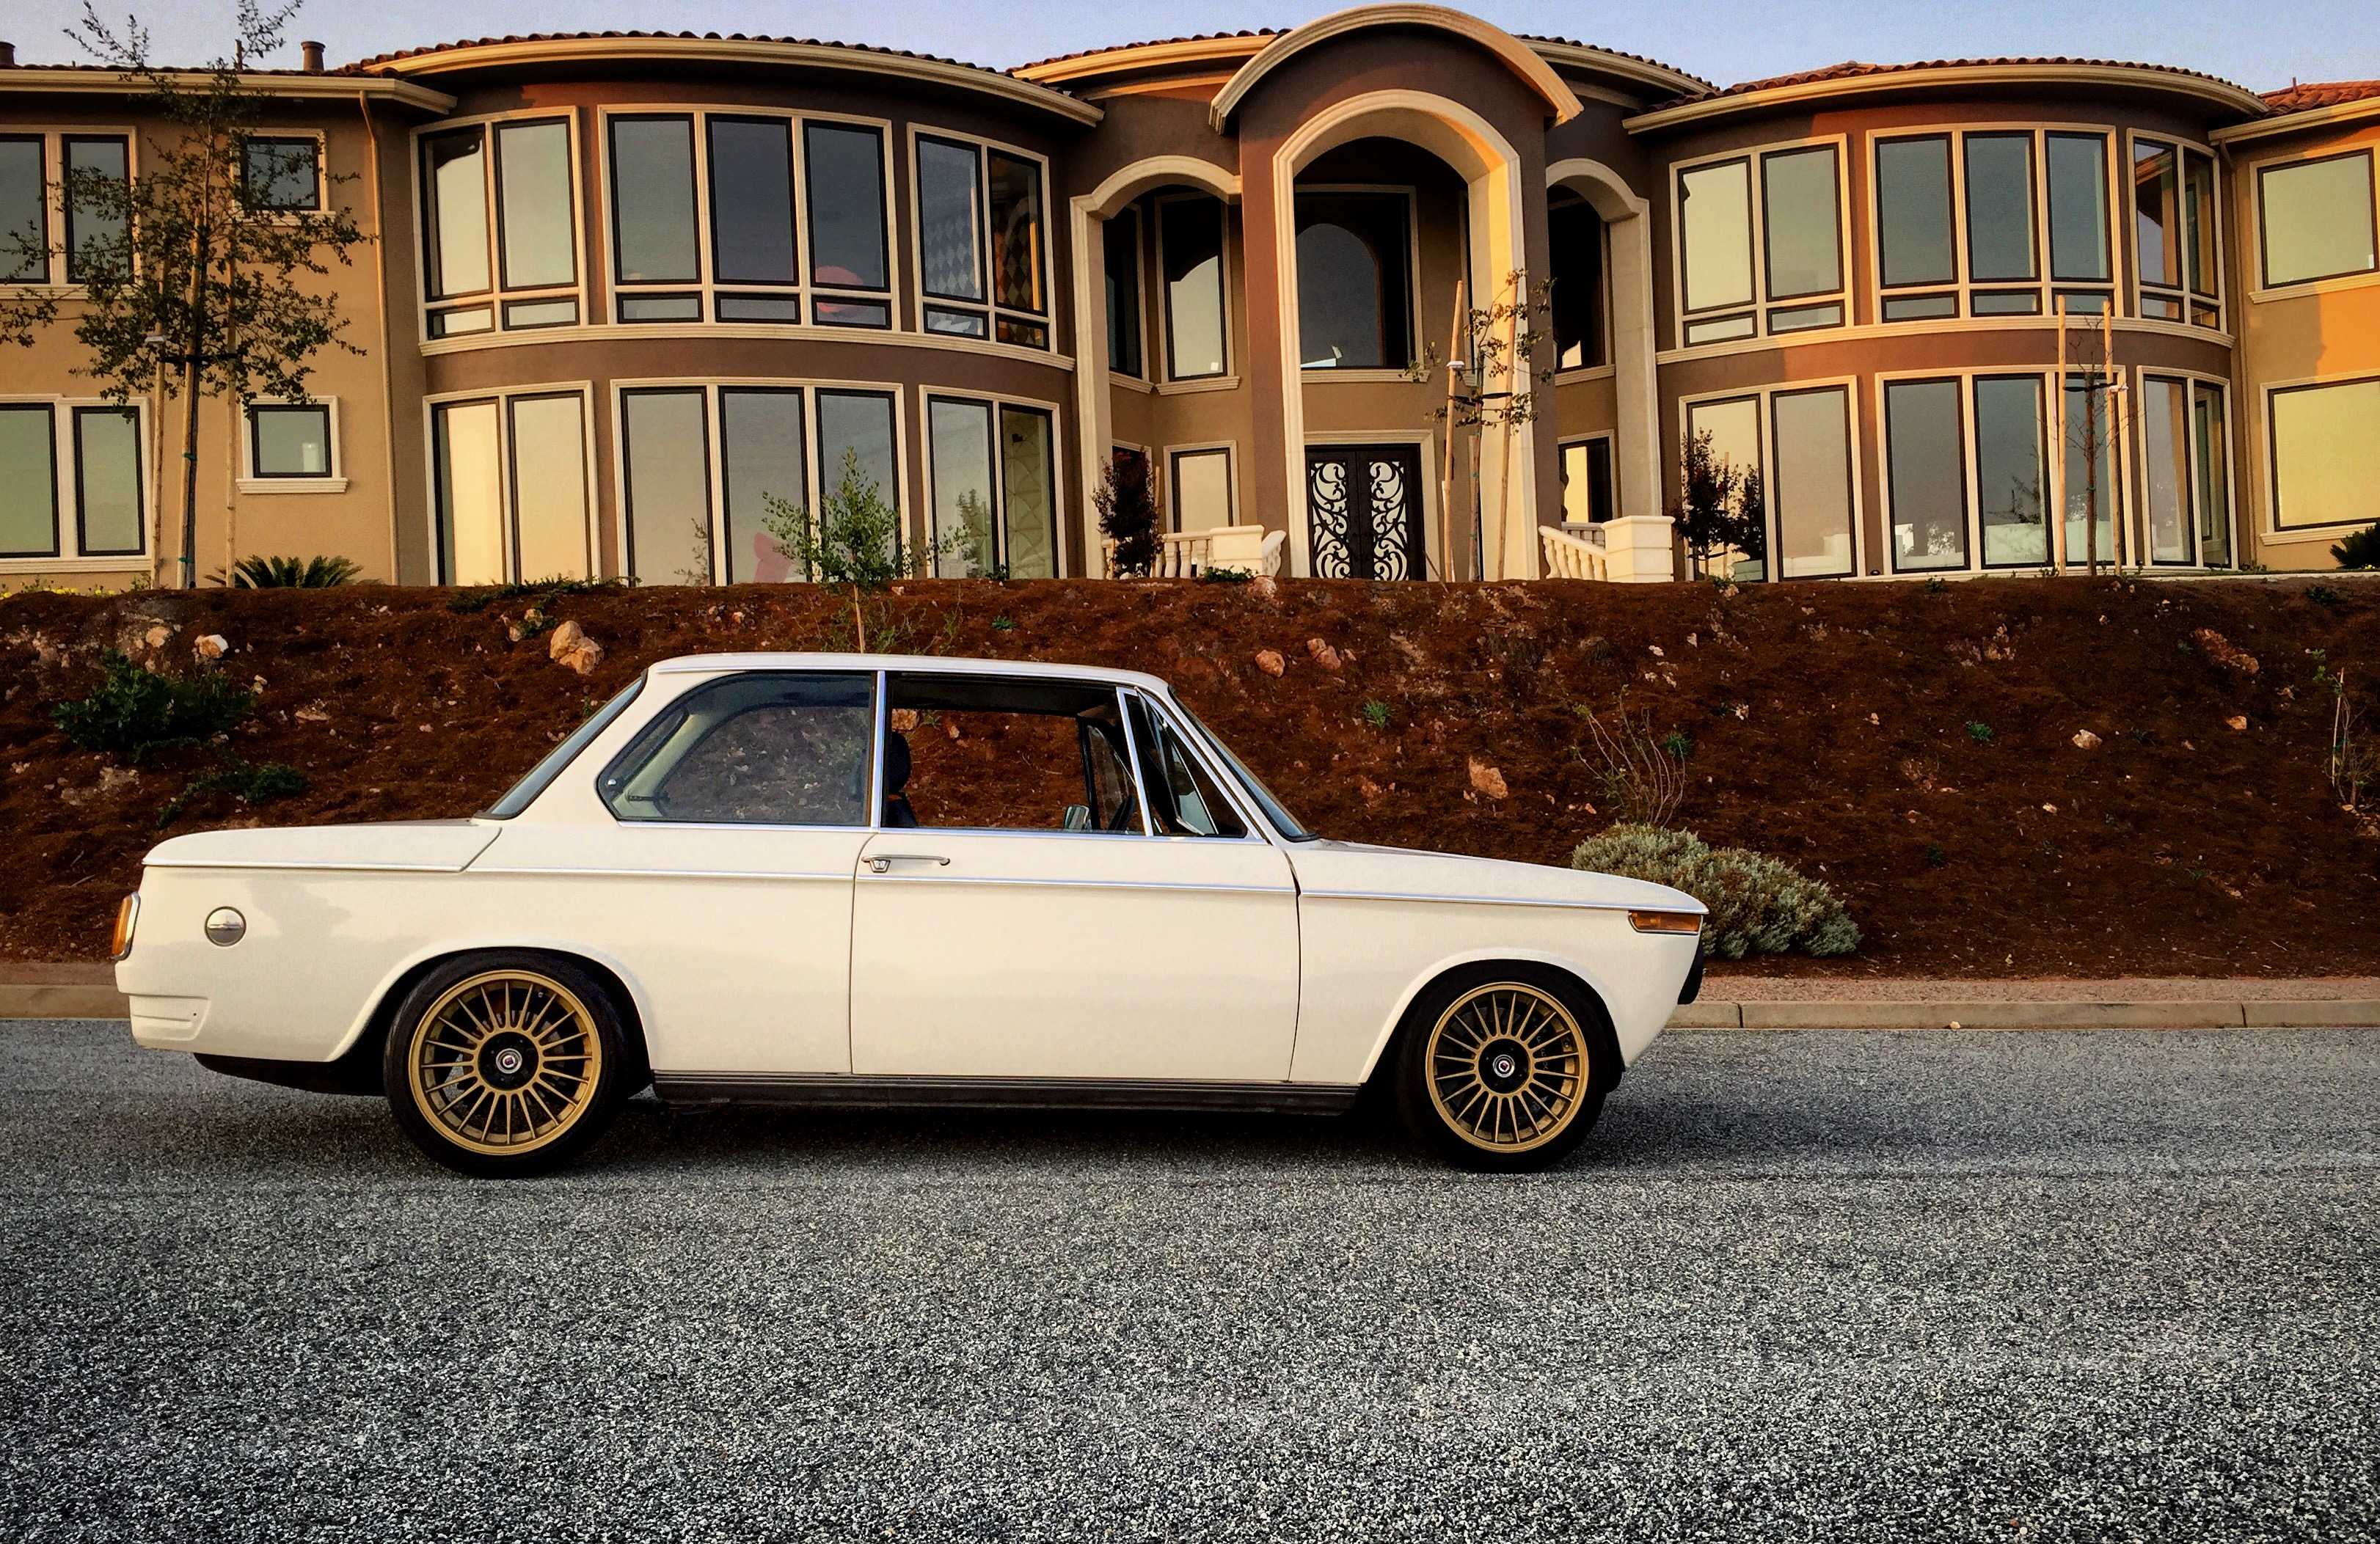 Alpina 16x7/8 Staggered Wheels - SOLD - Parts For Sale - BMW 2002 FAQ